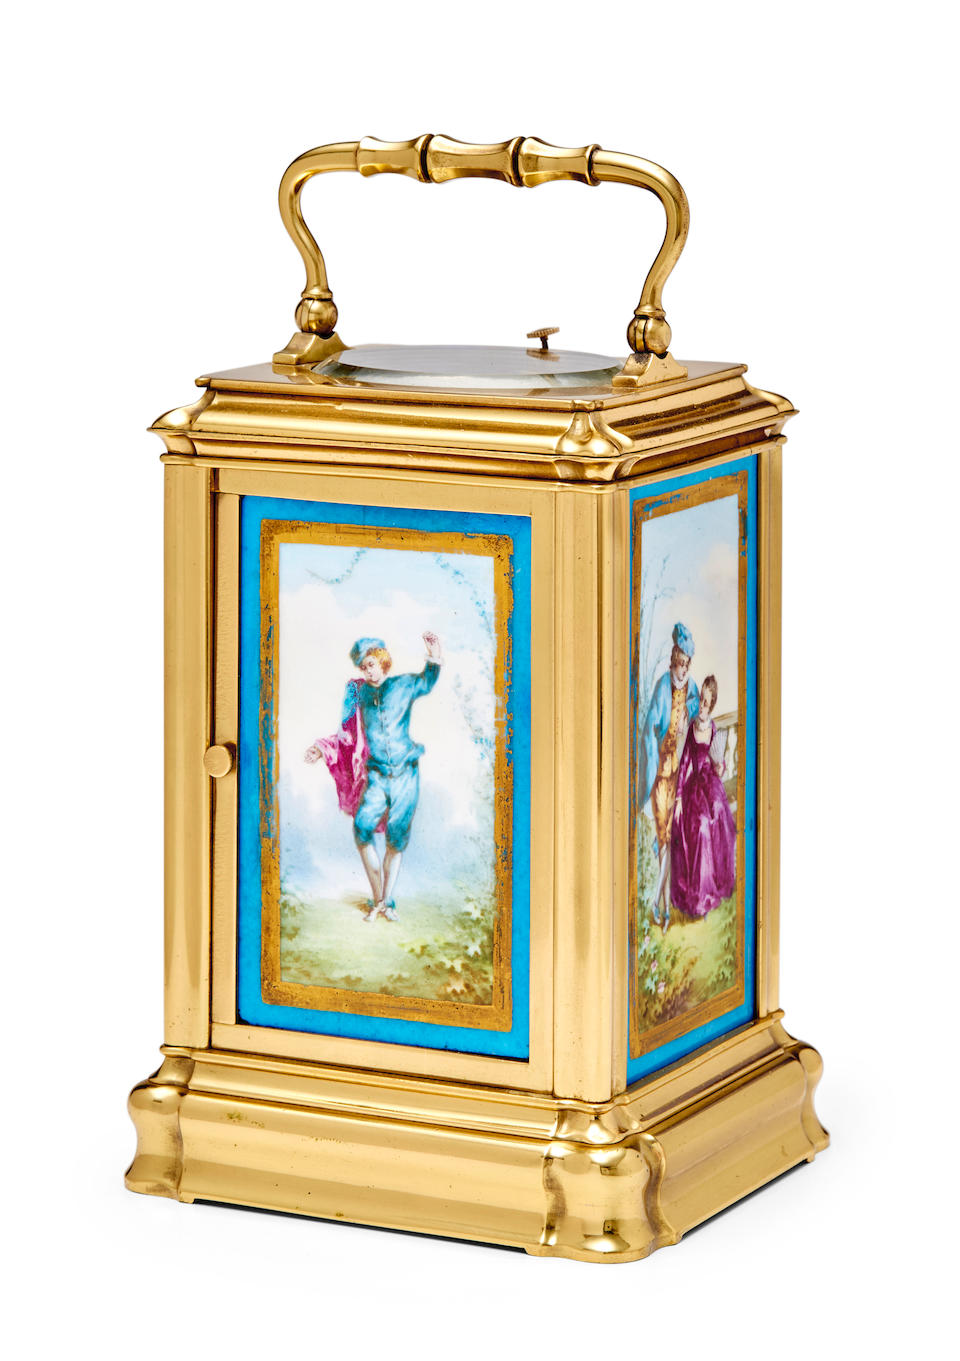 A rare gilt repeating carriage clock with four porcelain panelsLast quarter 19th century